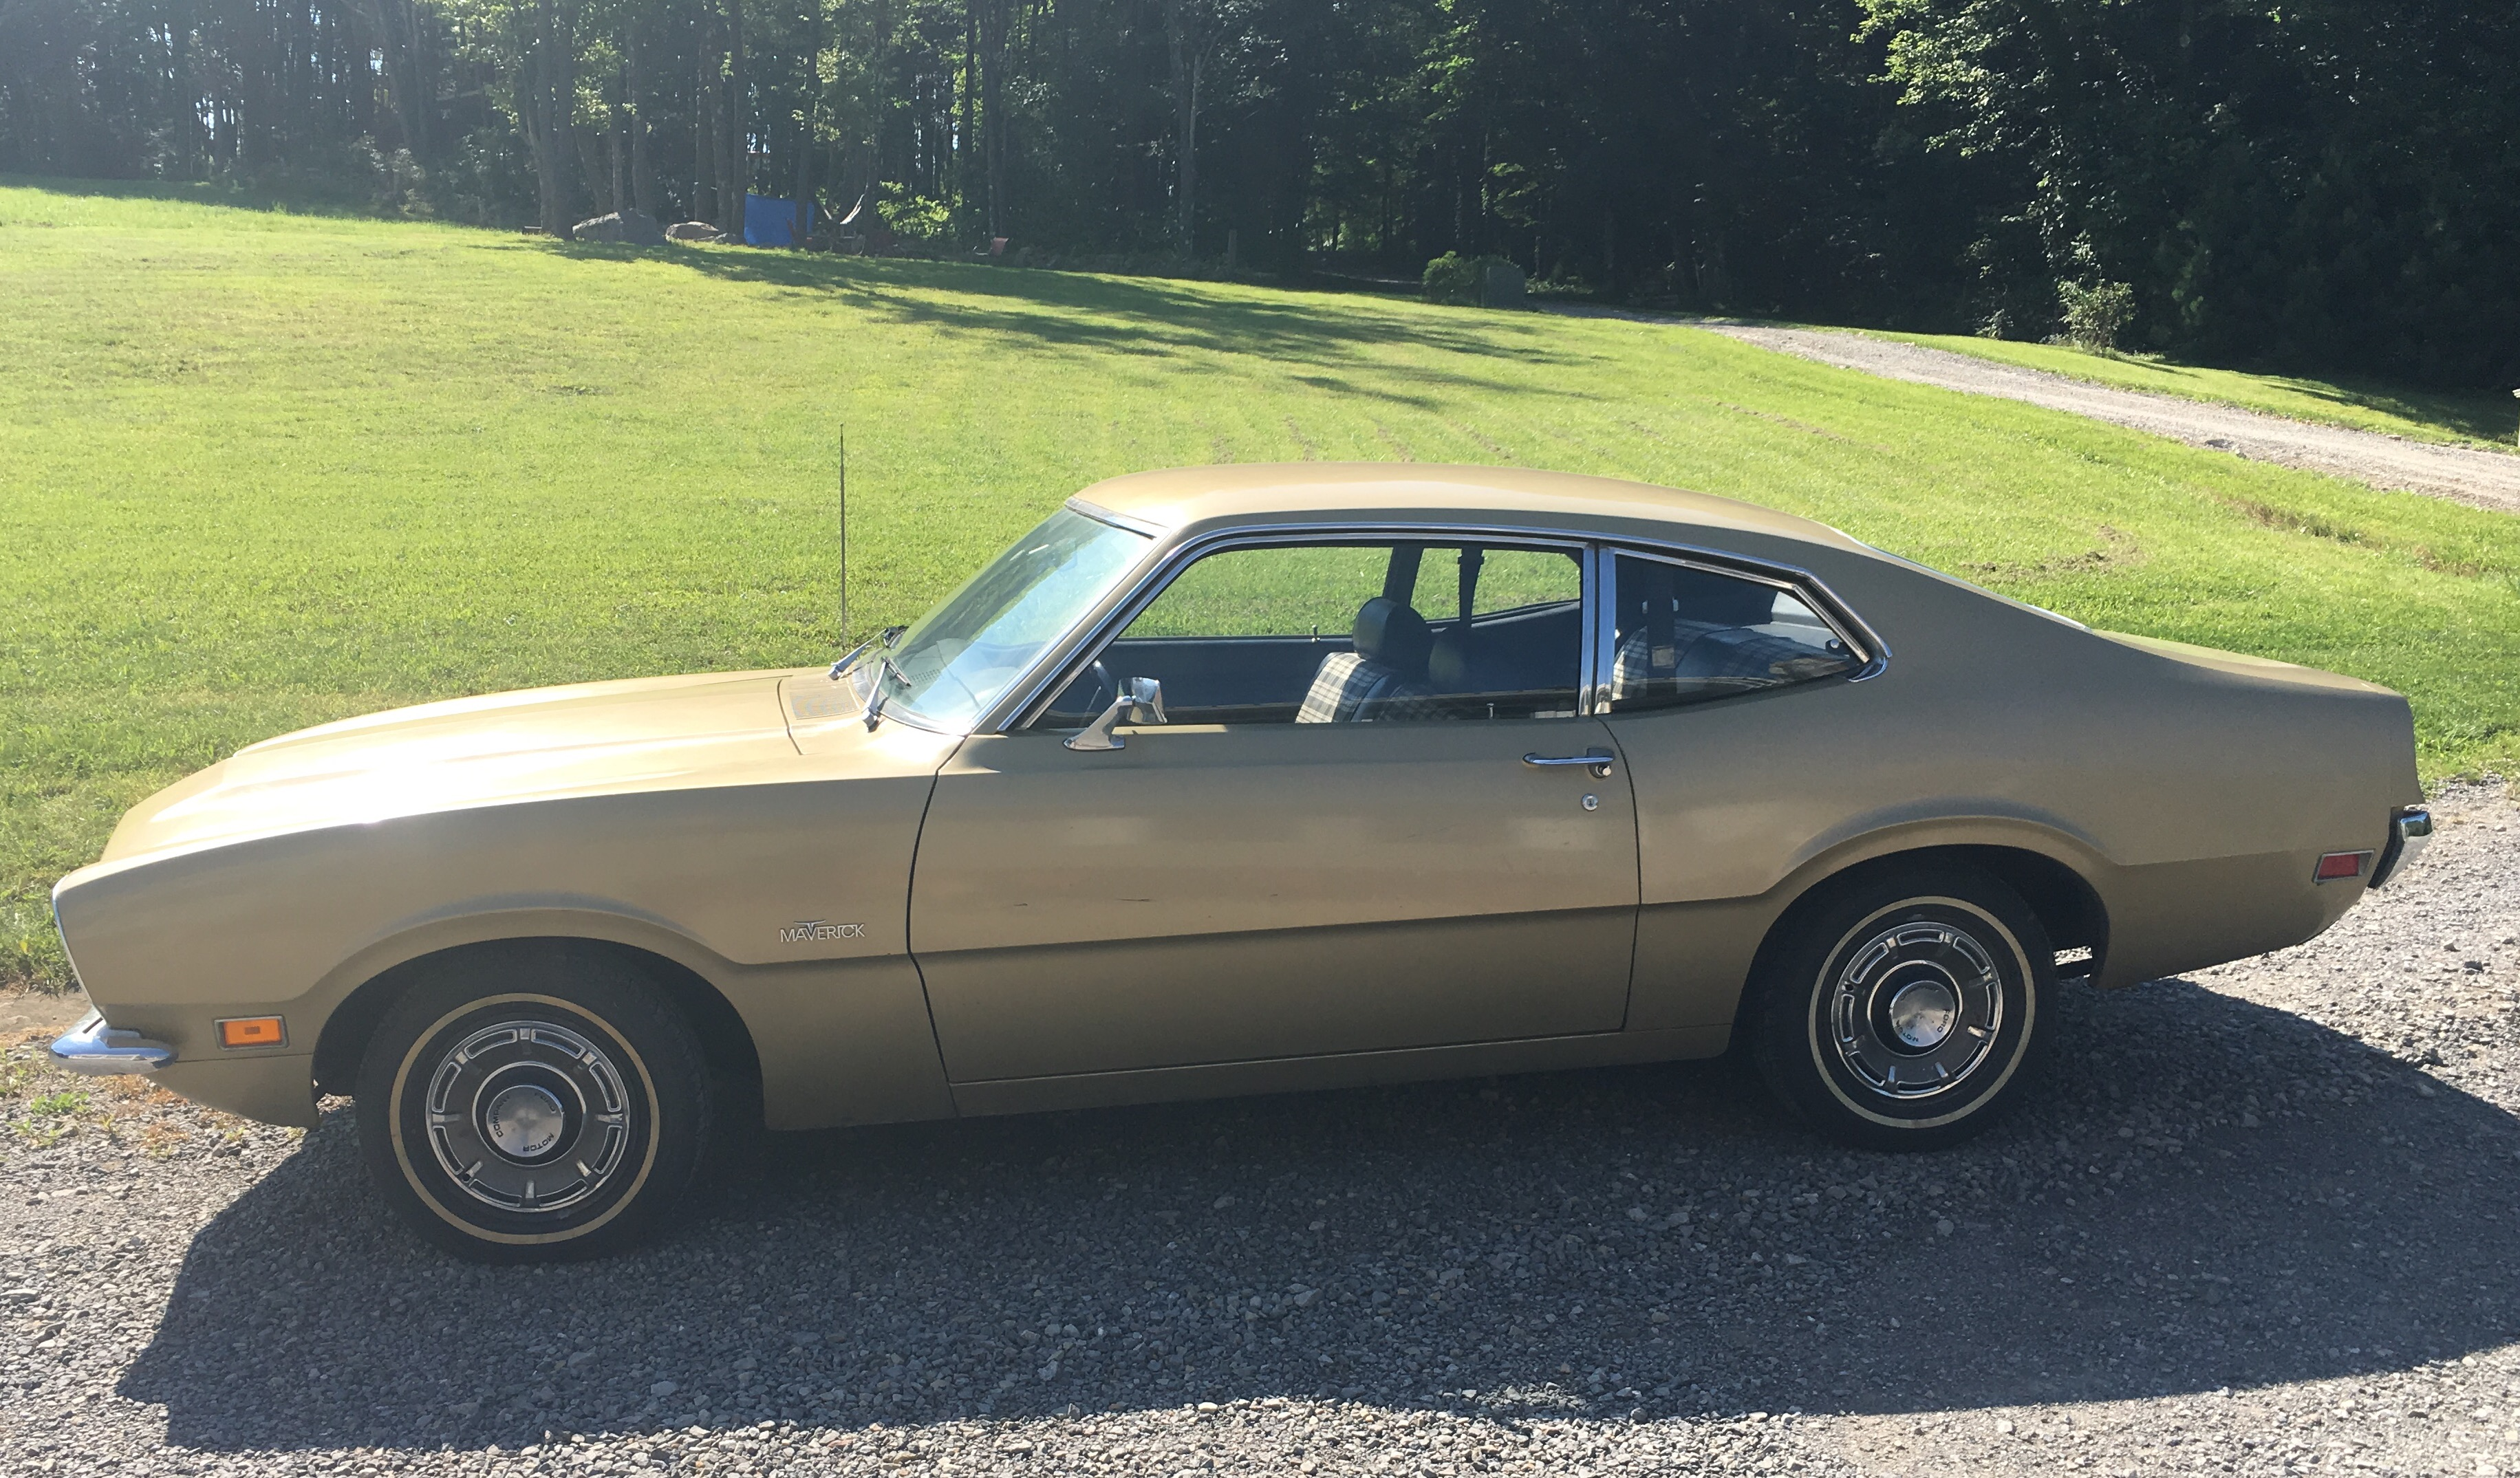 Ebay Sale 1970 Ford Maverick 21 000 Miles Original Cars For Sale Antique Automobile Club Of America Discussion Forums